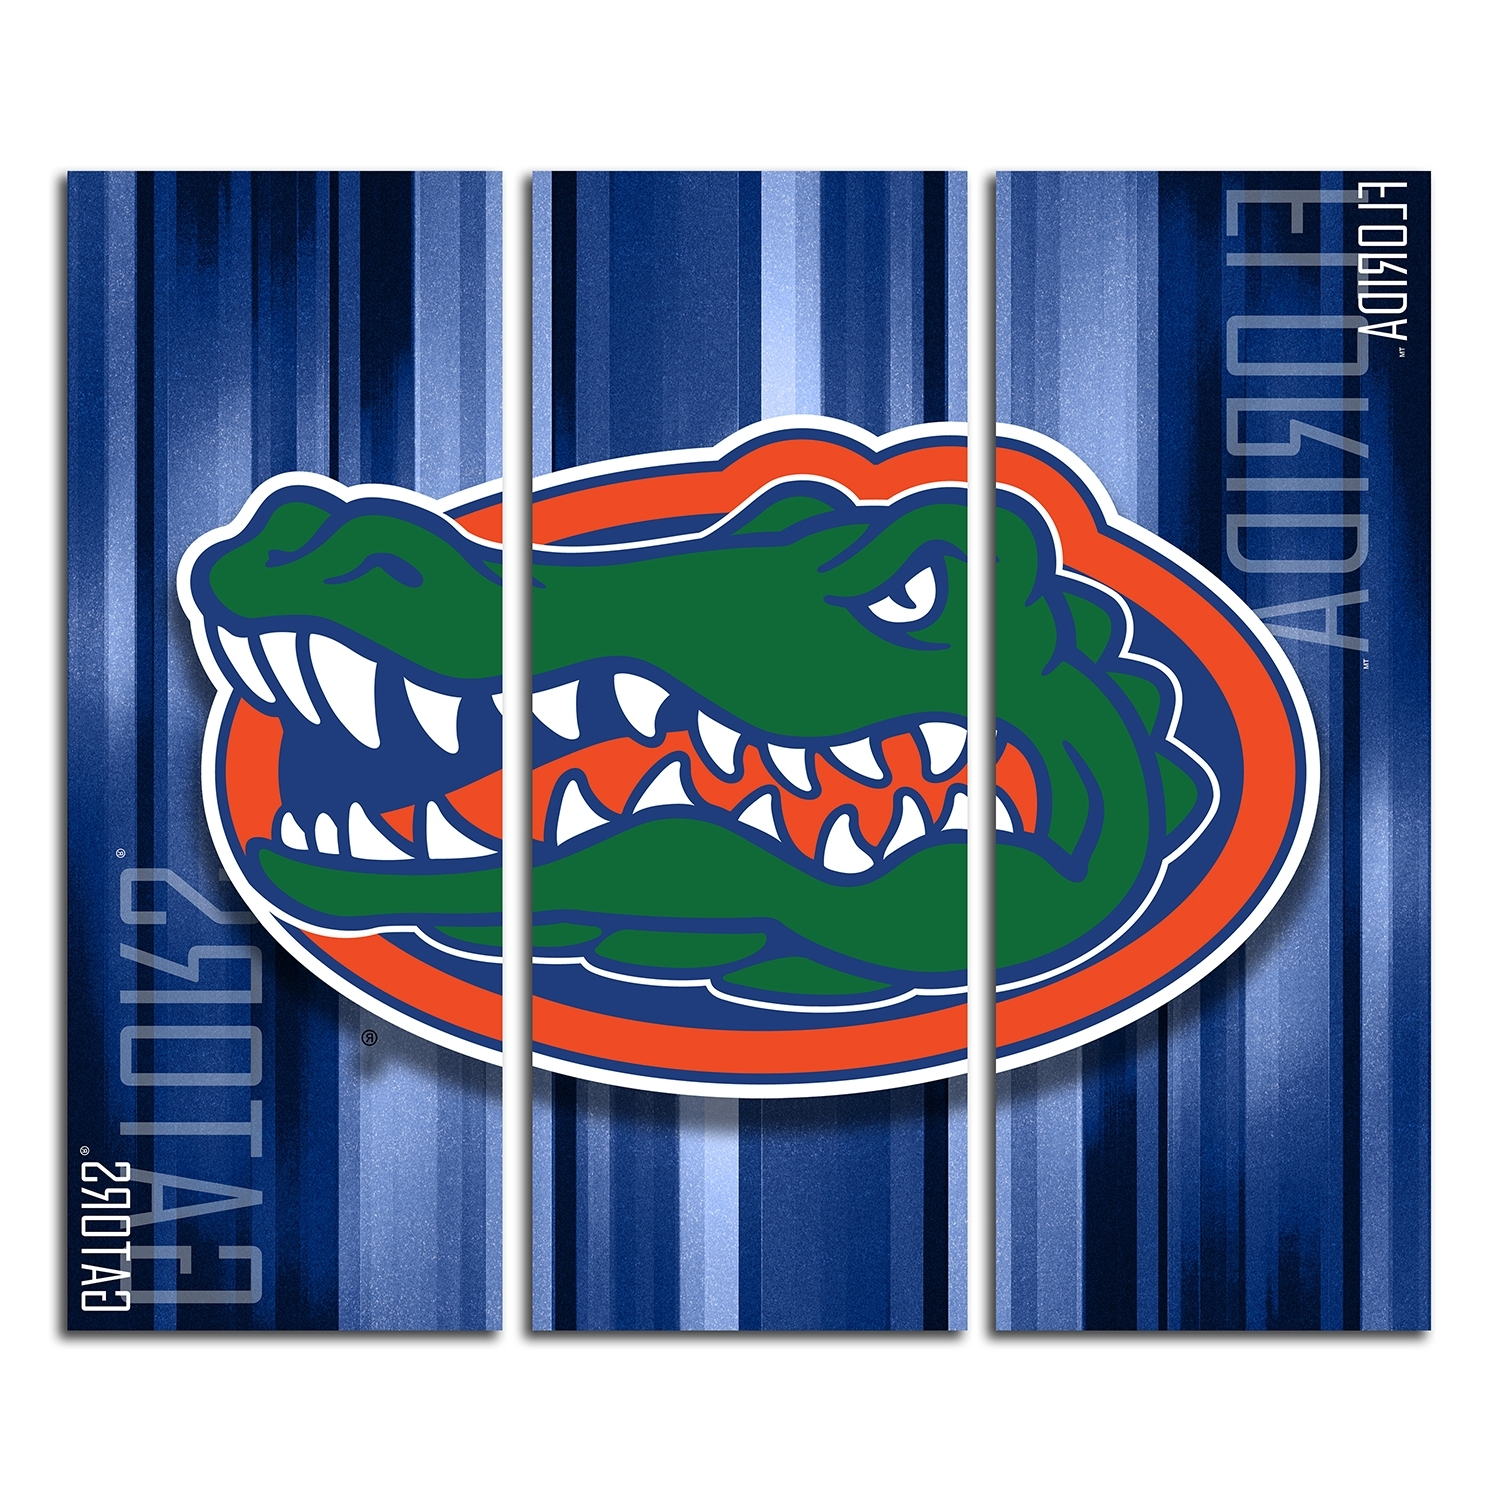 Cozy Design Florida Gator Wall Art Together With Gators Logo Decal Throughout Current Florida Gator Wall Art (View 2 of 15)